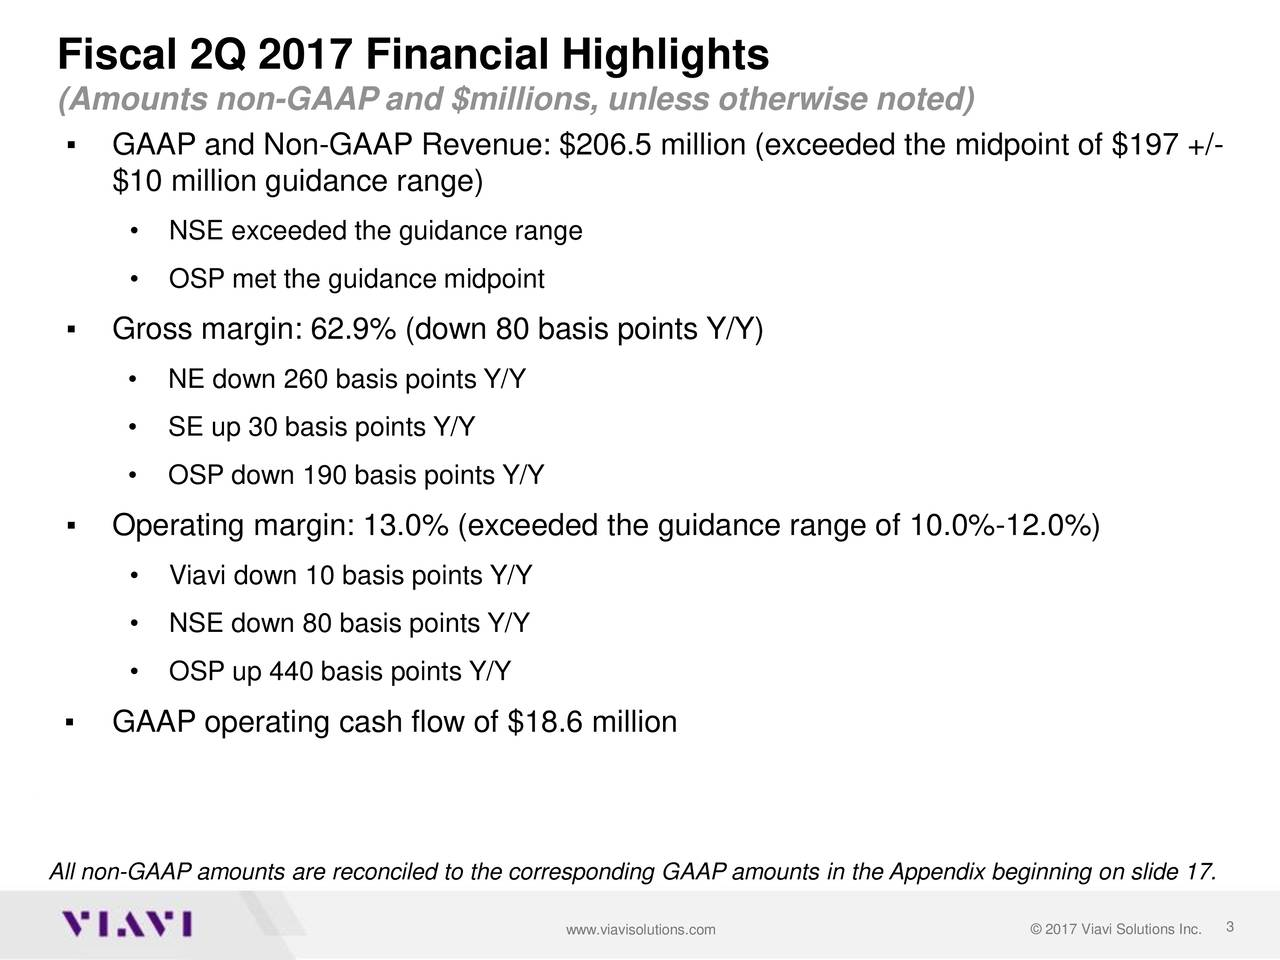 (Amounts non-GAAP and $millions, unless otherwise noted) GAAP and Non-GAAP Revenue: $206.5 million (exceeded the midpoint of $197 +/- $10 million guidance range) NSE exceeded the guidance range OSP met the guidance midpoint Gross margin: 62.9% (down 80 basis points Y/Y) NE down 260 basis points Y/Y SE up 30 basis points Y/Y OSP down 190 basis points Y/Y Operating margin: 13.0% (exceeded the guidance range of 10.0%-12.0%) Viavi down 10 basis points Y/Y NSE down 80 basis points Y/Y OSP up 440 basis points Y/Y GAAP operating cash flow of $18.6 million All non-GAAP amounts are reconciled to the corresponding GAAP amounts in the Appendix beginning on slide 17. www.viavisolutions.com  2017 Viavi Solutions Inc.